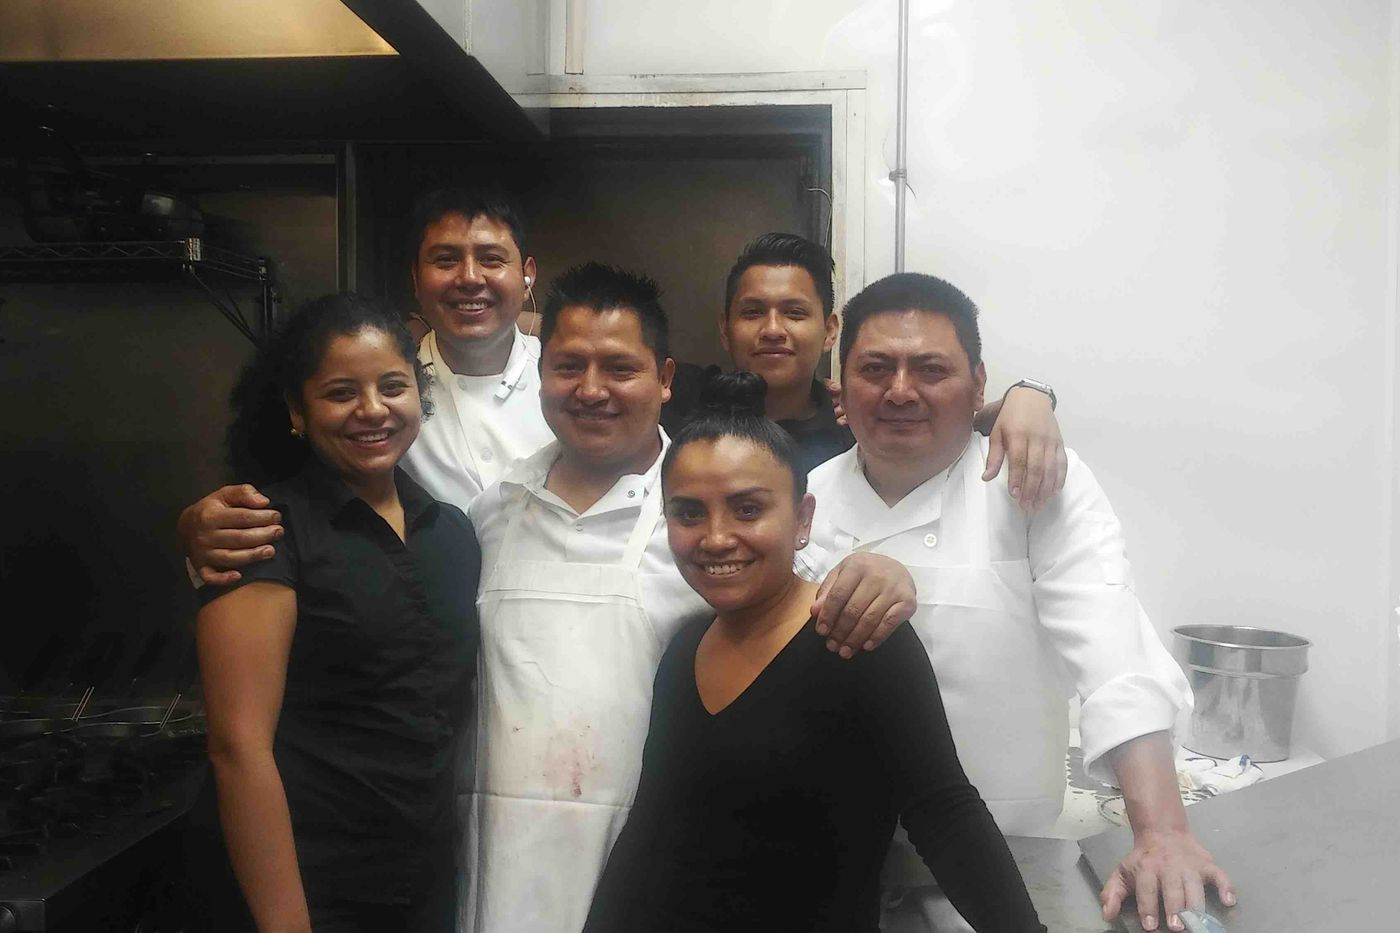 My award-winning Philly restaurant would not exist without immigrants | Perspective